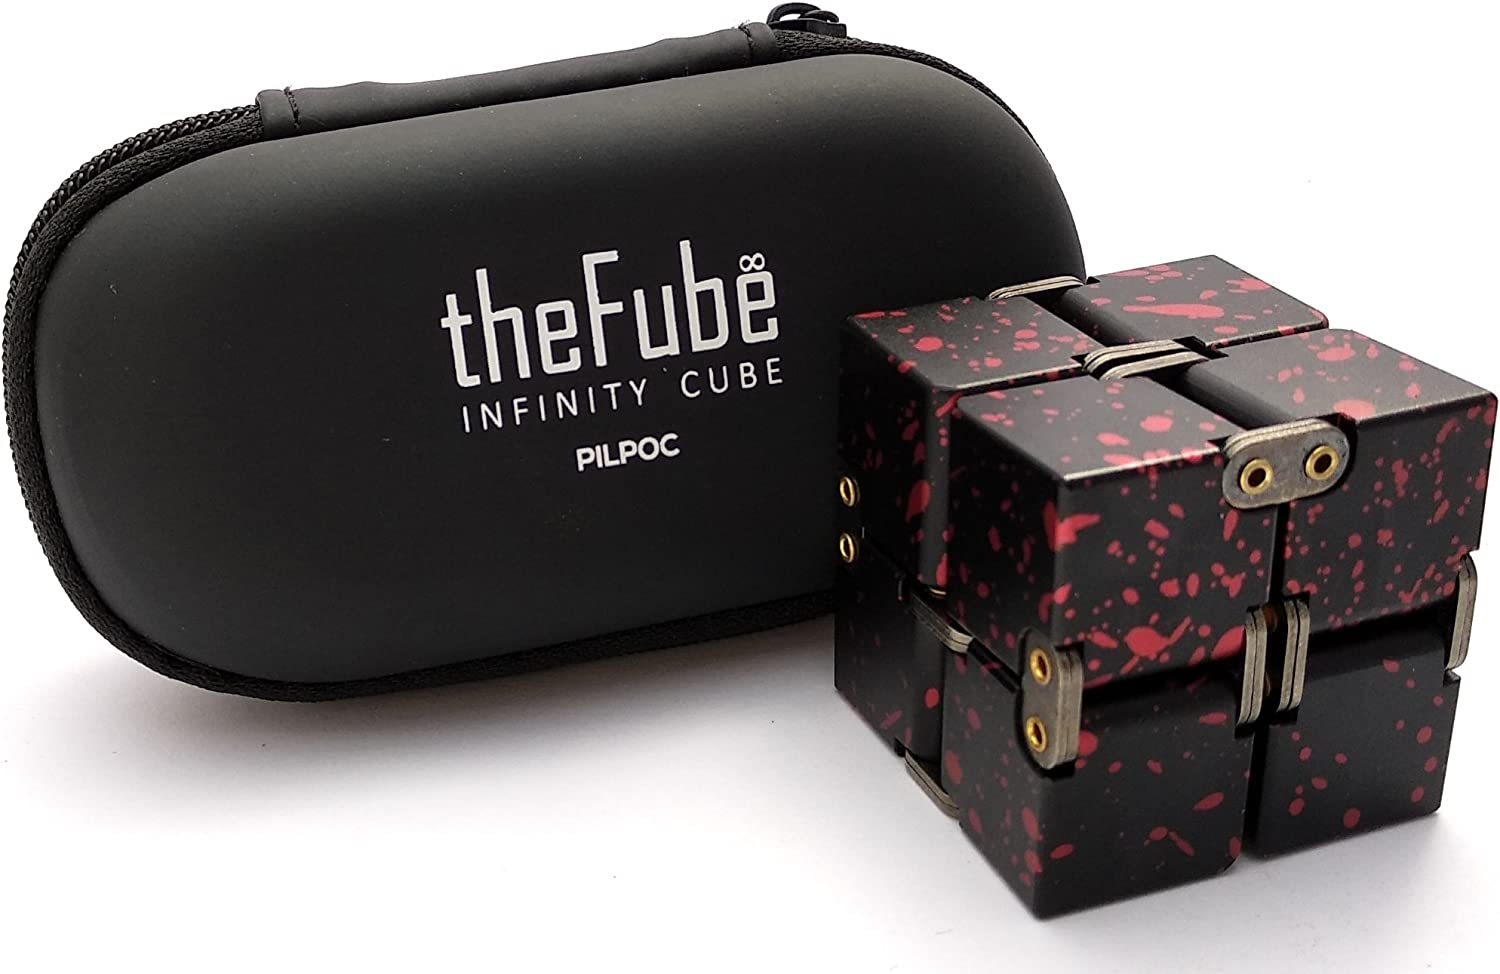 This is an image of a fidget cube in black with pink specks color. Behind it is a storage case in oval shape.